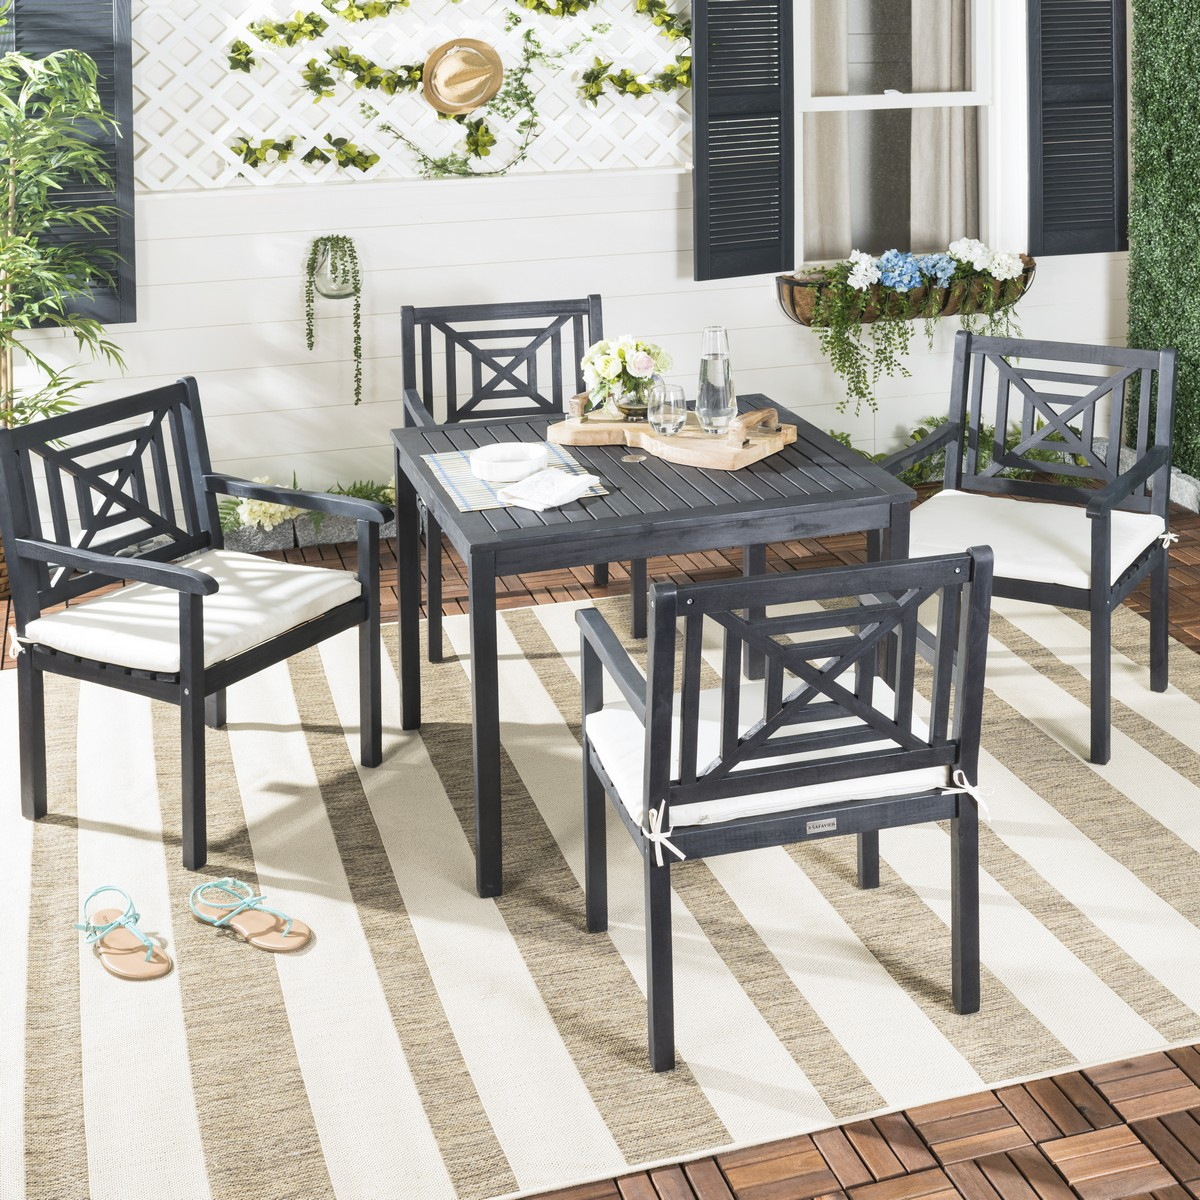 Pat6722K Patio Sets – 5 Piece Outdoor Dining Sets – Furniture Intended For Most Current Delmar 5 Piece Dining Sets (View 13 of 20)